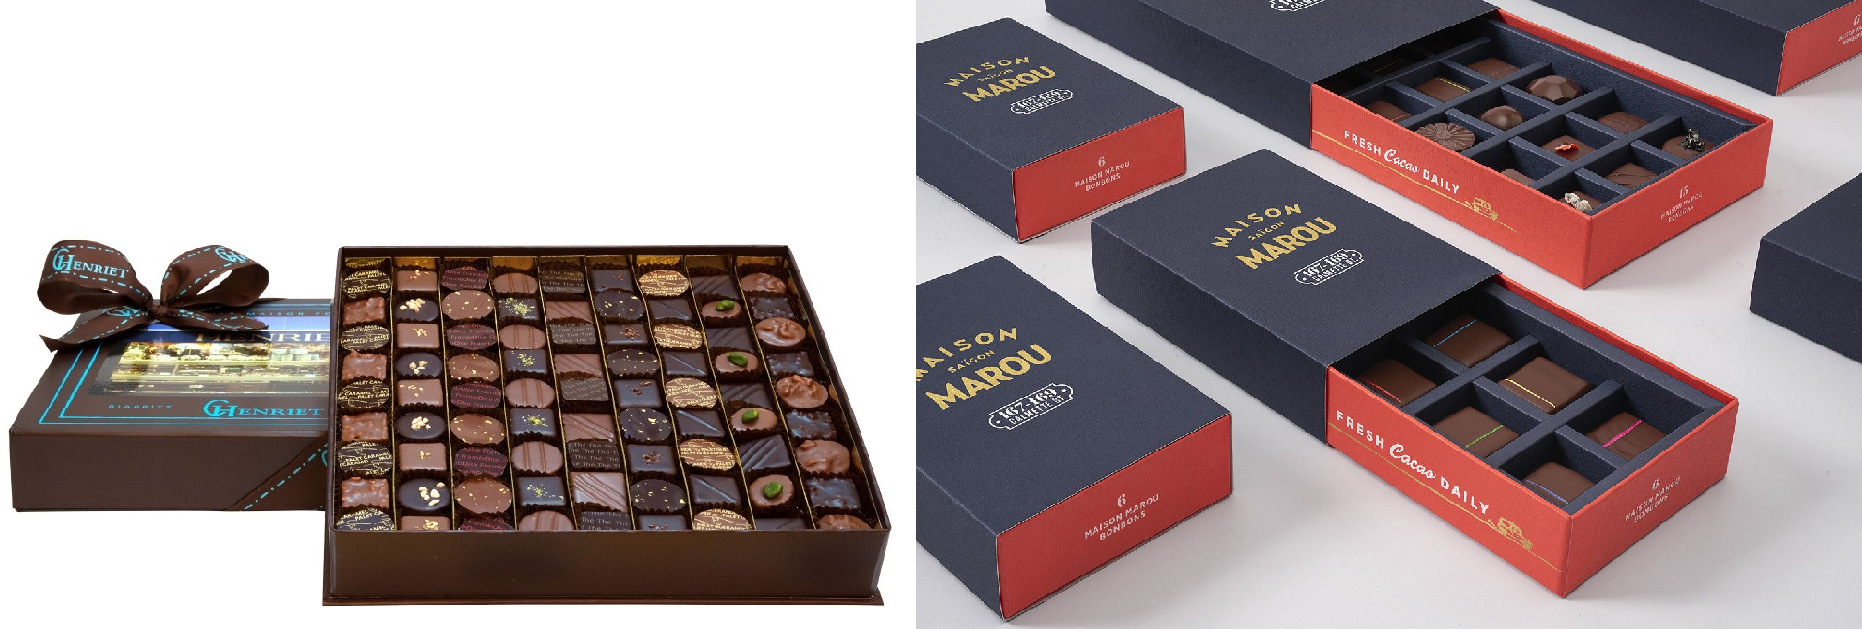 packaging chocolat coffret Marou